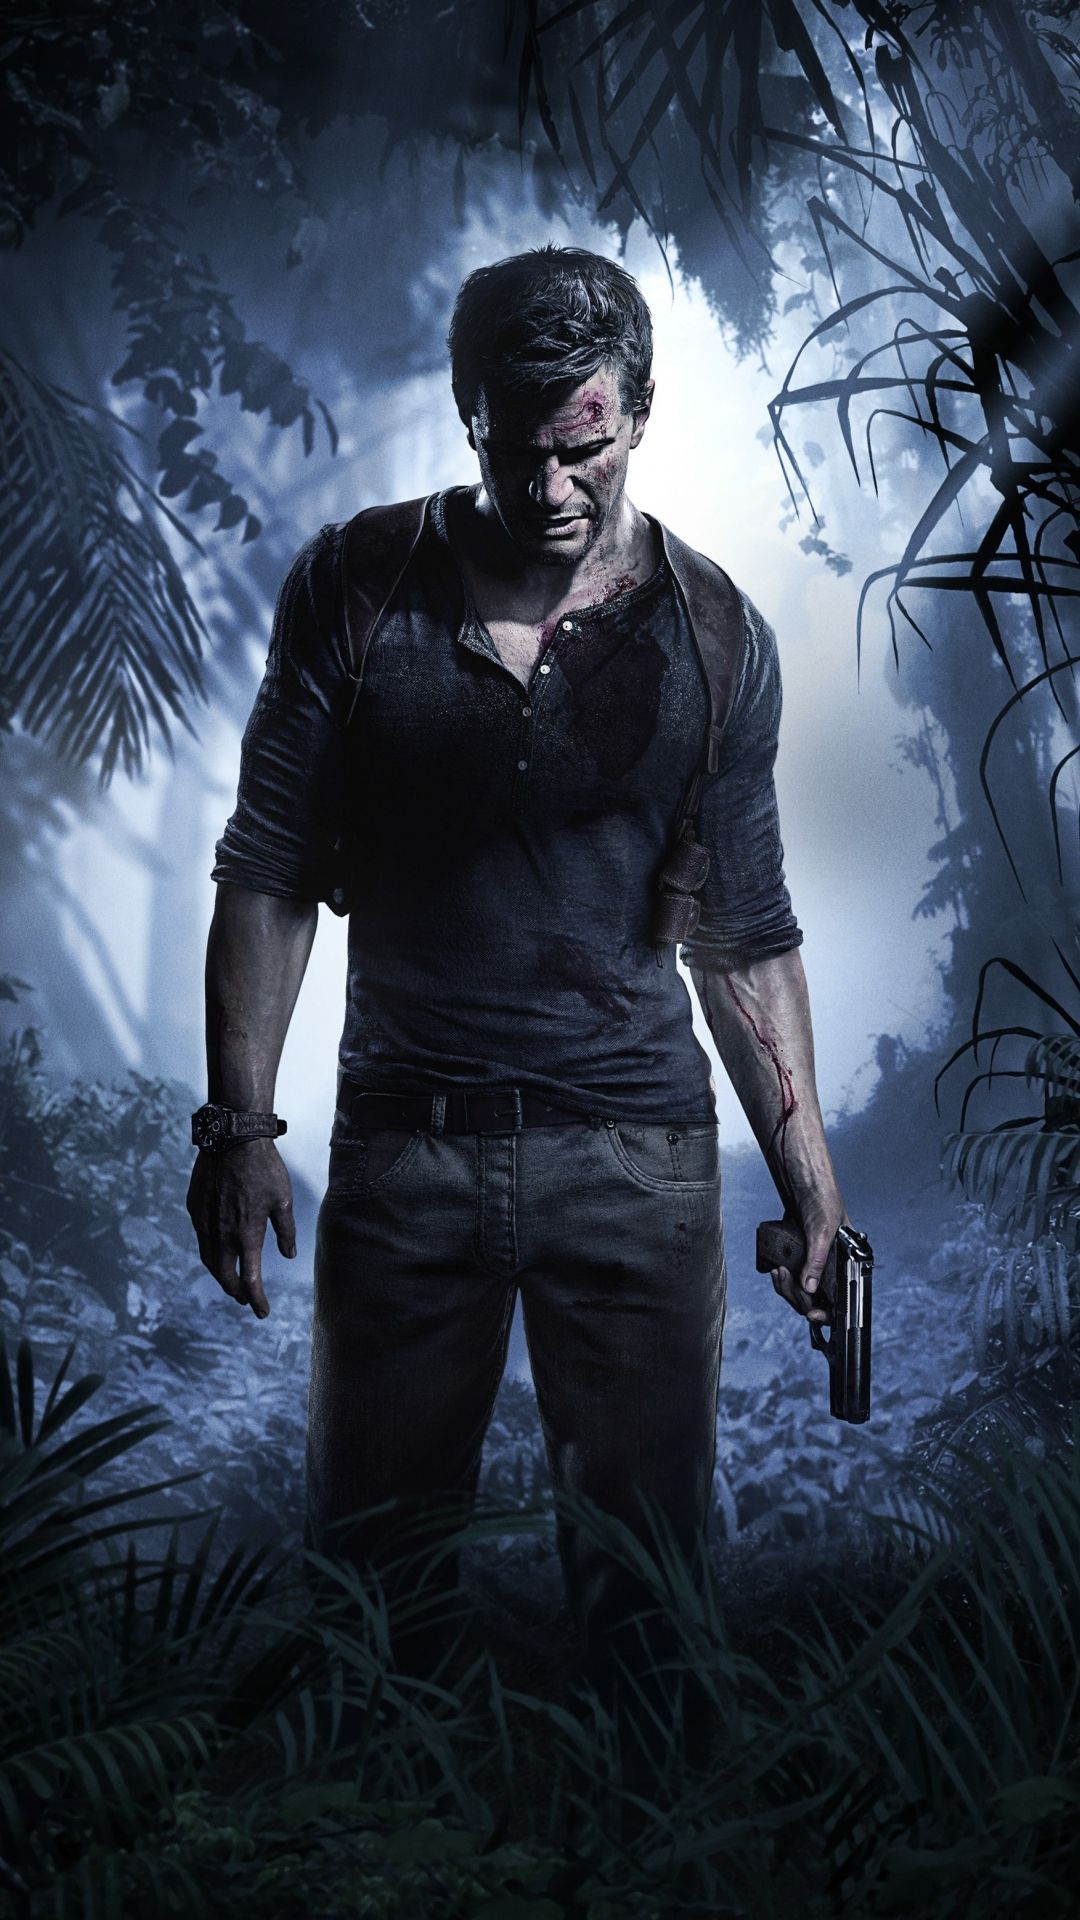 Uncharted 4 Wallpaper Home Screen Uncharted 4 Wallpaper In 2020 Uncharted Game Uncharted Uncharted Artwork